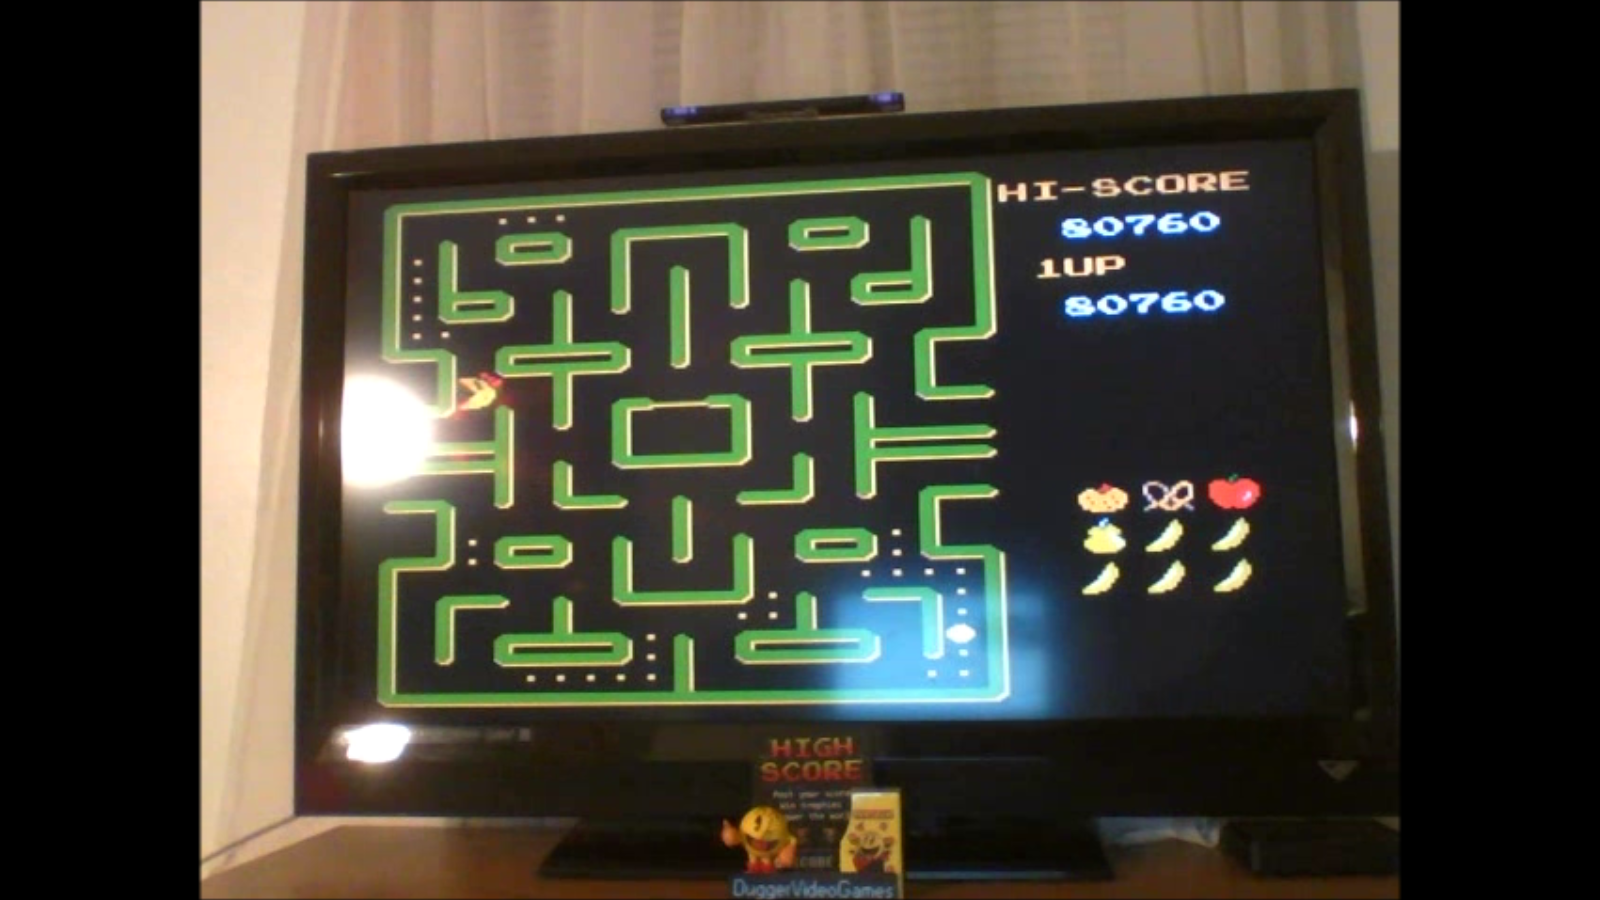 DuggerVideoGames: Ms. Pac-Man [Namco] (NES/Famicom Emulated) 80,760 points on 2016-12-19 17:54:19